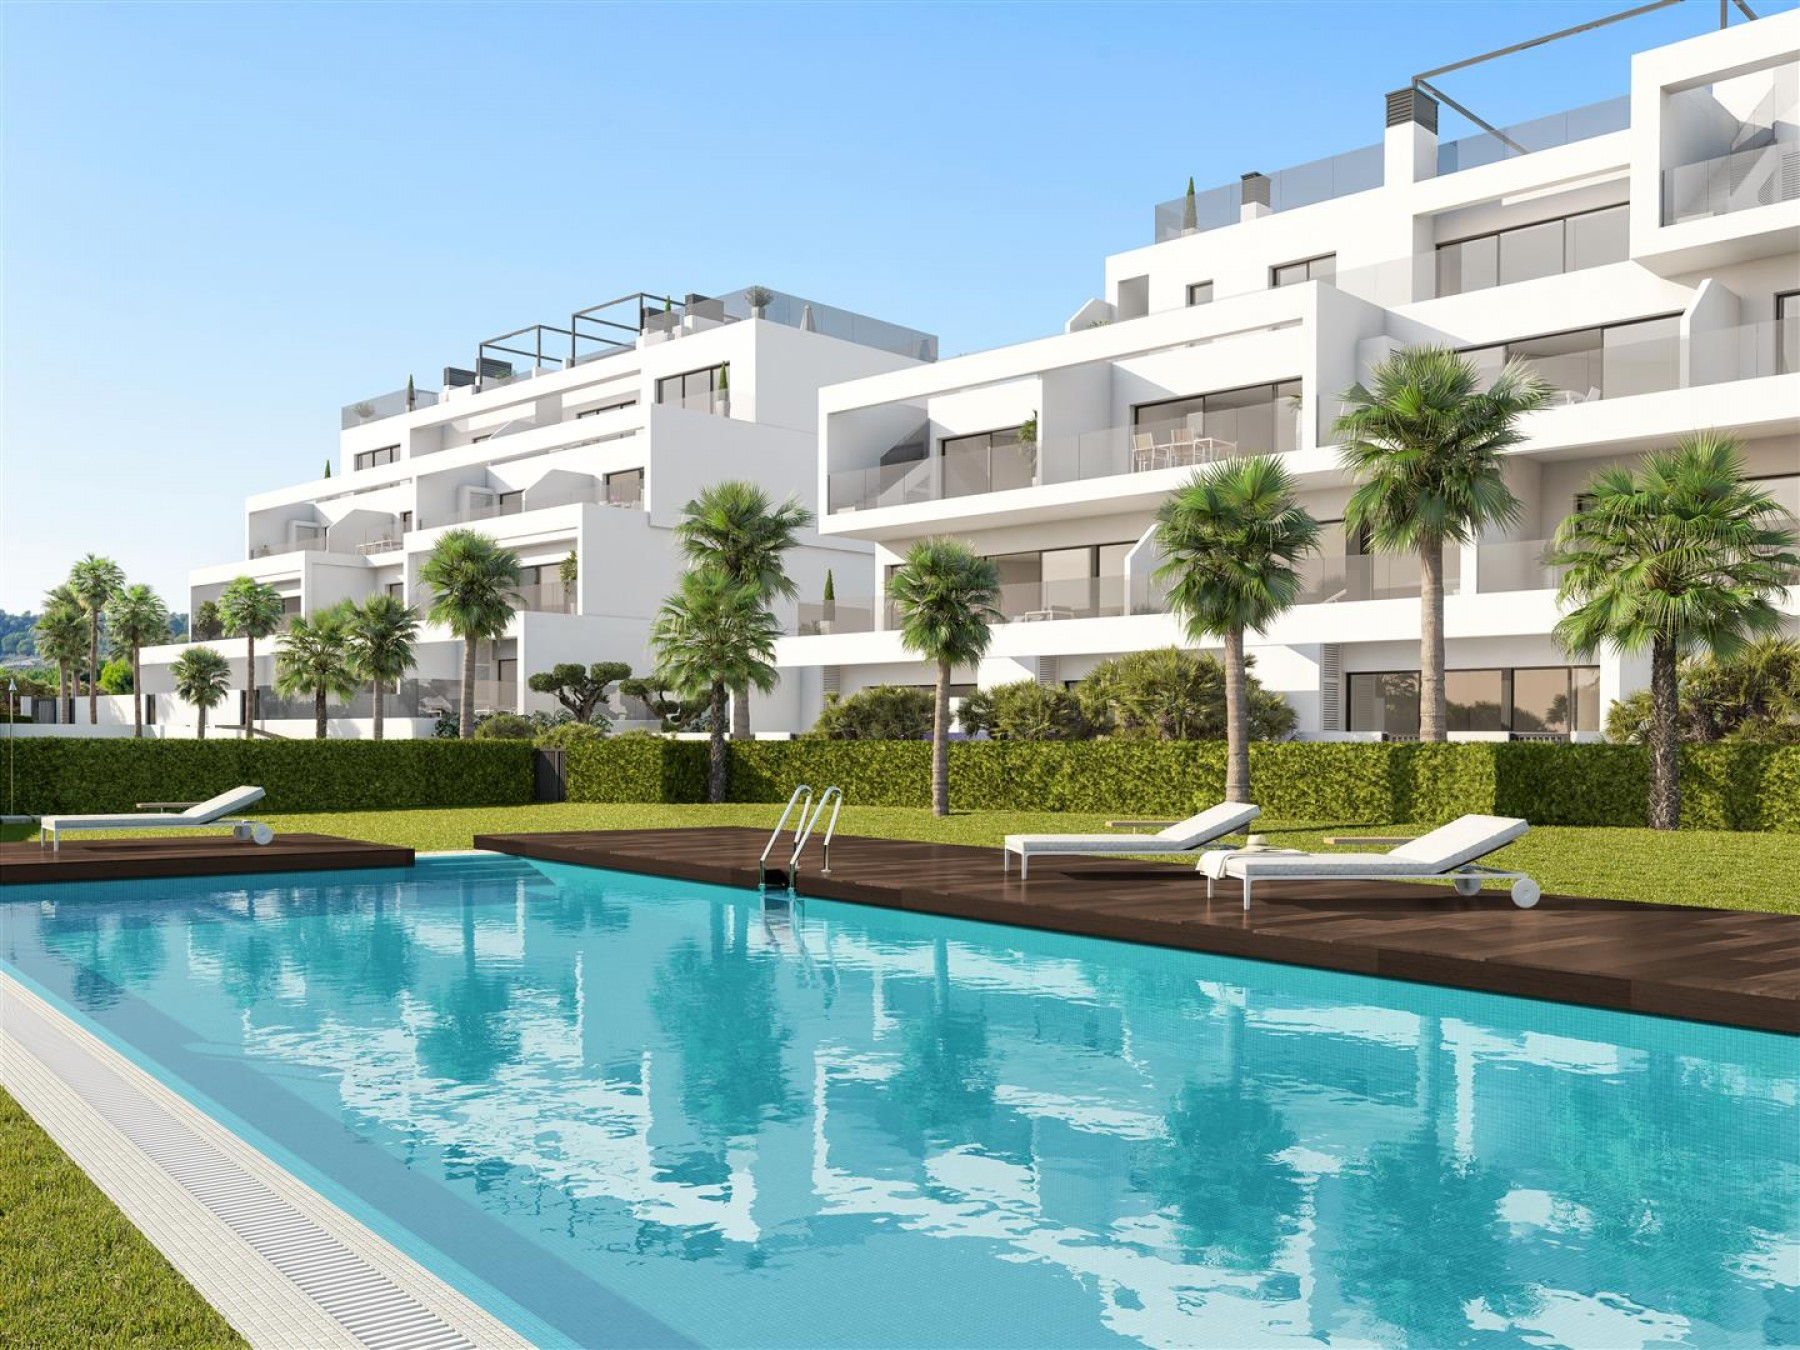 New-build 2-bedroom apartment in fantastic golf location, San Miguel de Salinas